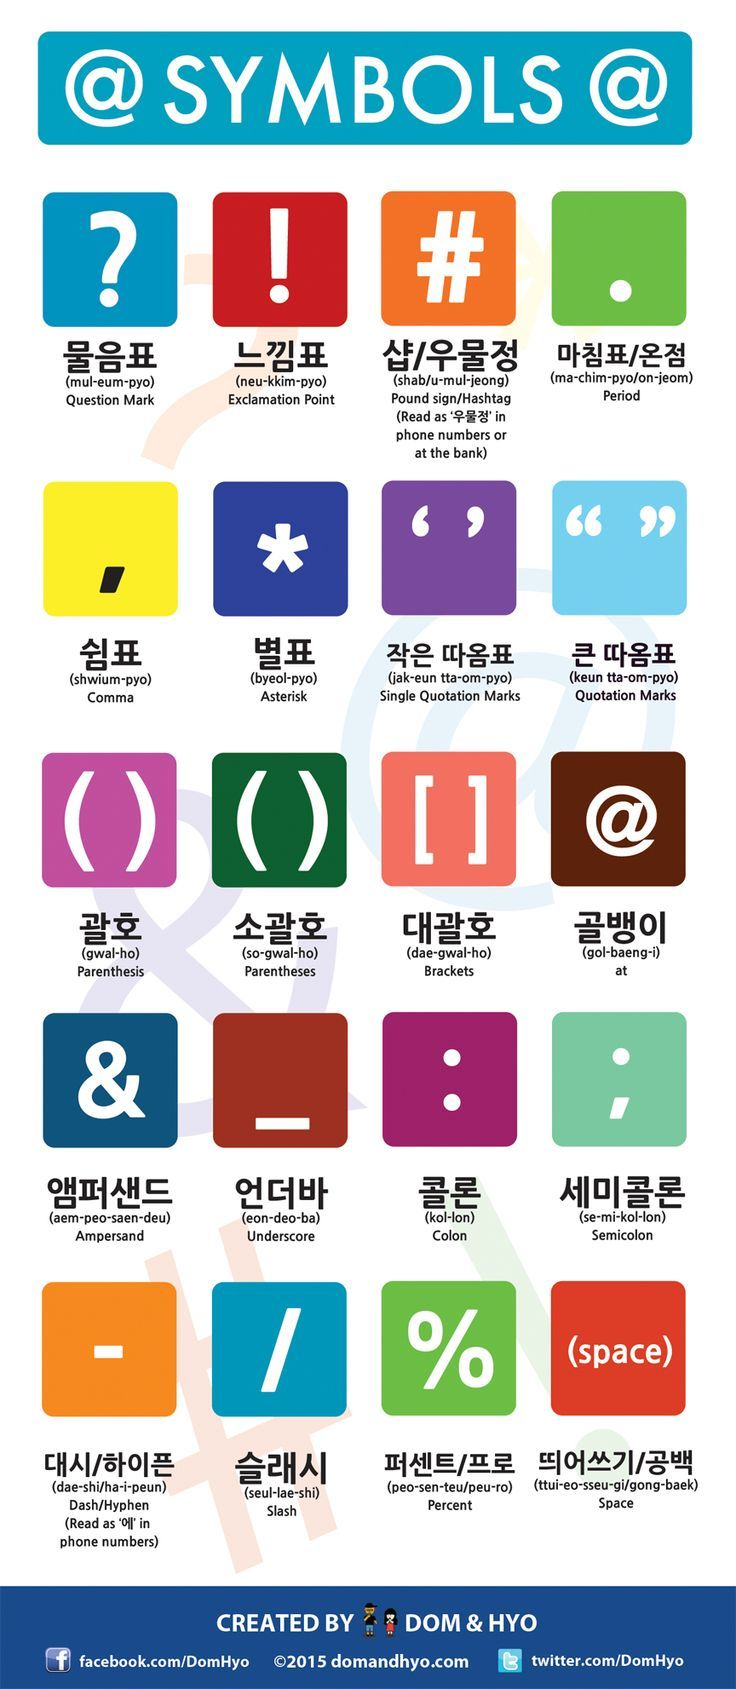 Learn Korean symbols with this helpful infographic from Dom & Hyo